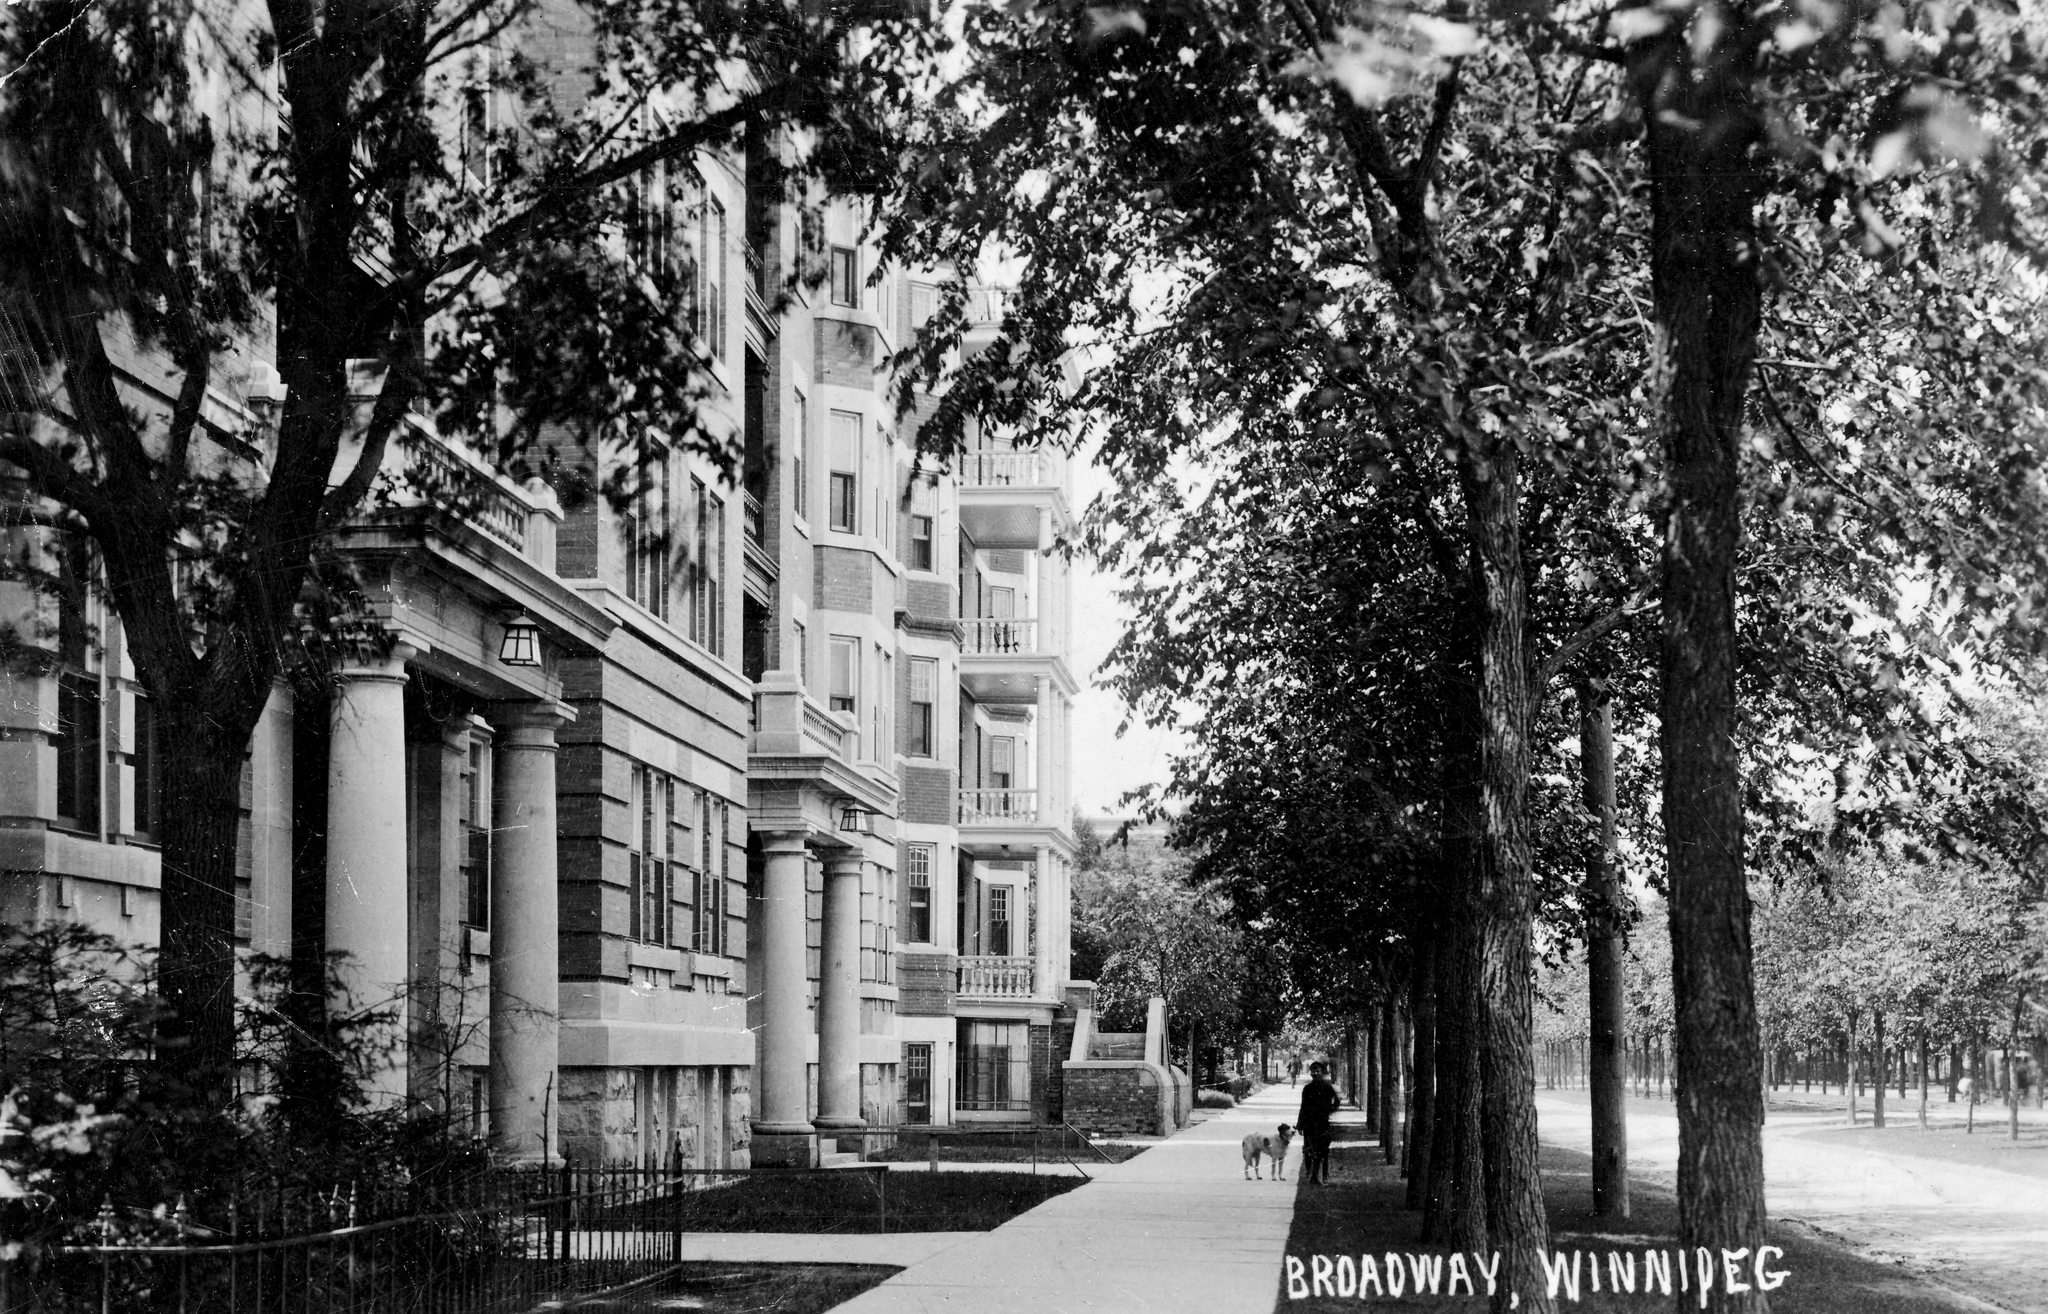 LYALL PHOTO CO. / WINTERBOS ON FLICKR</p><p>A view of Broadway's elms, circa 1910.</p>